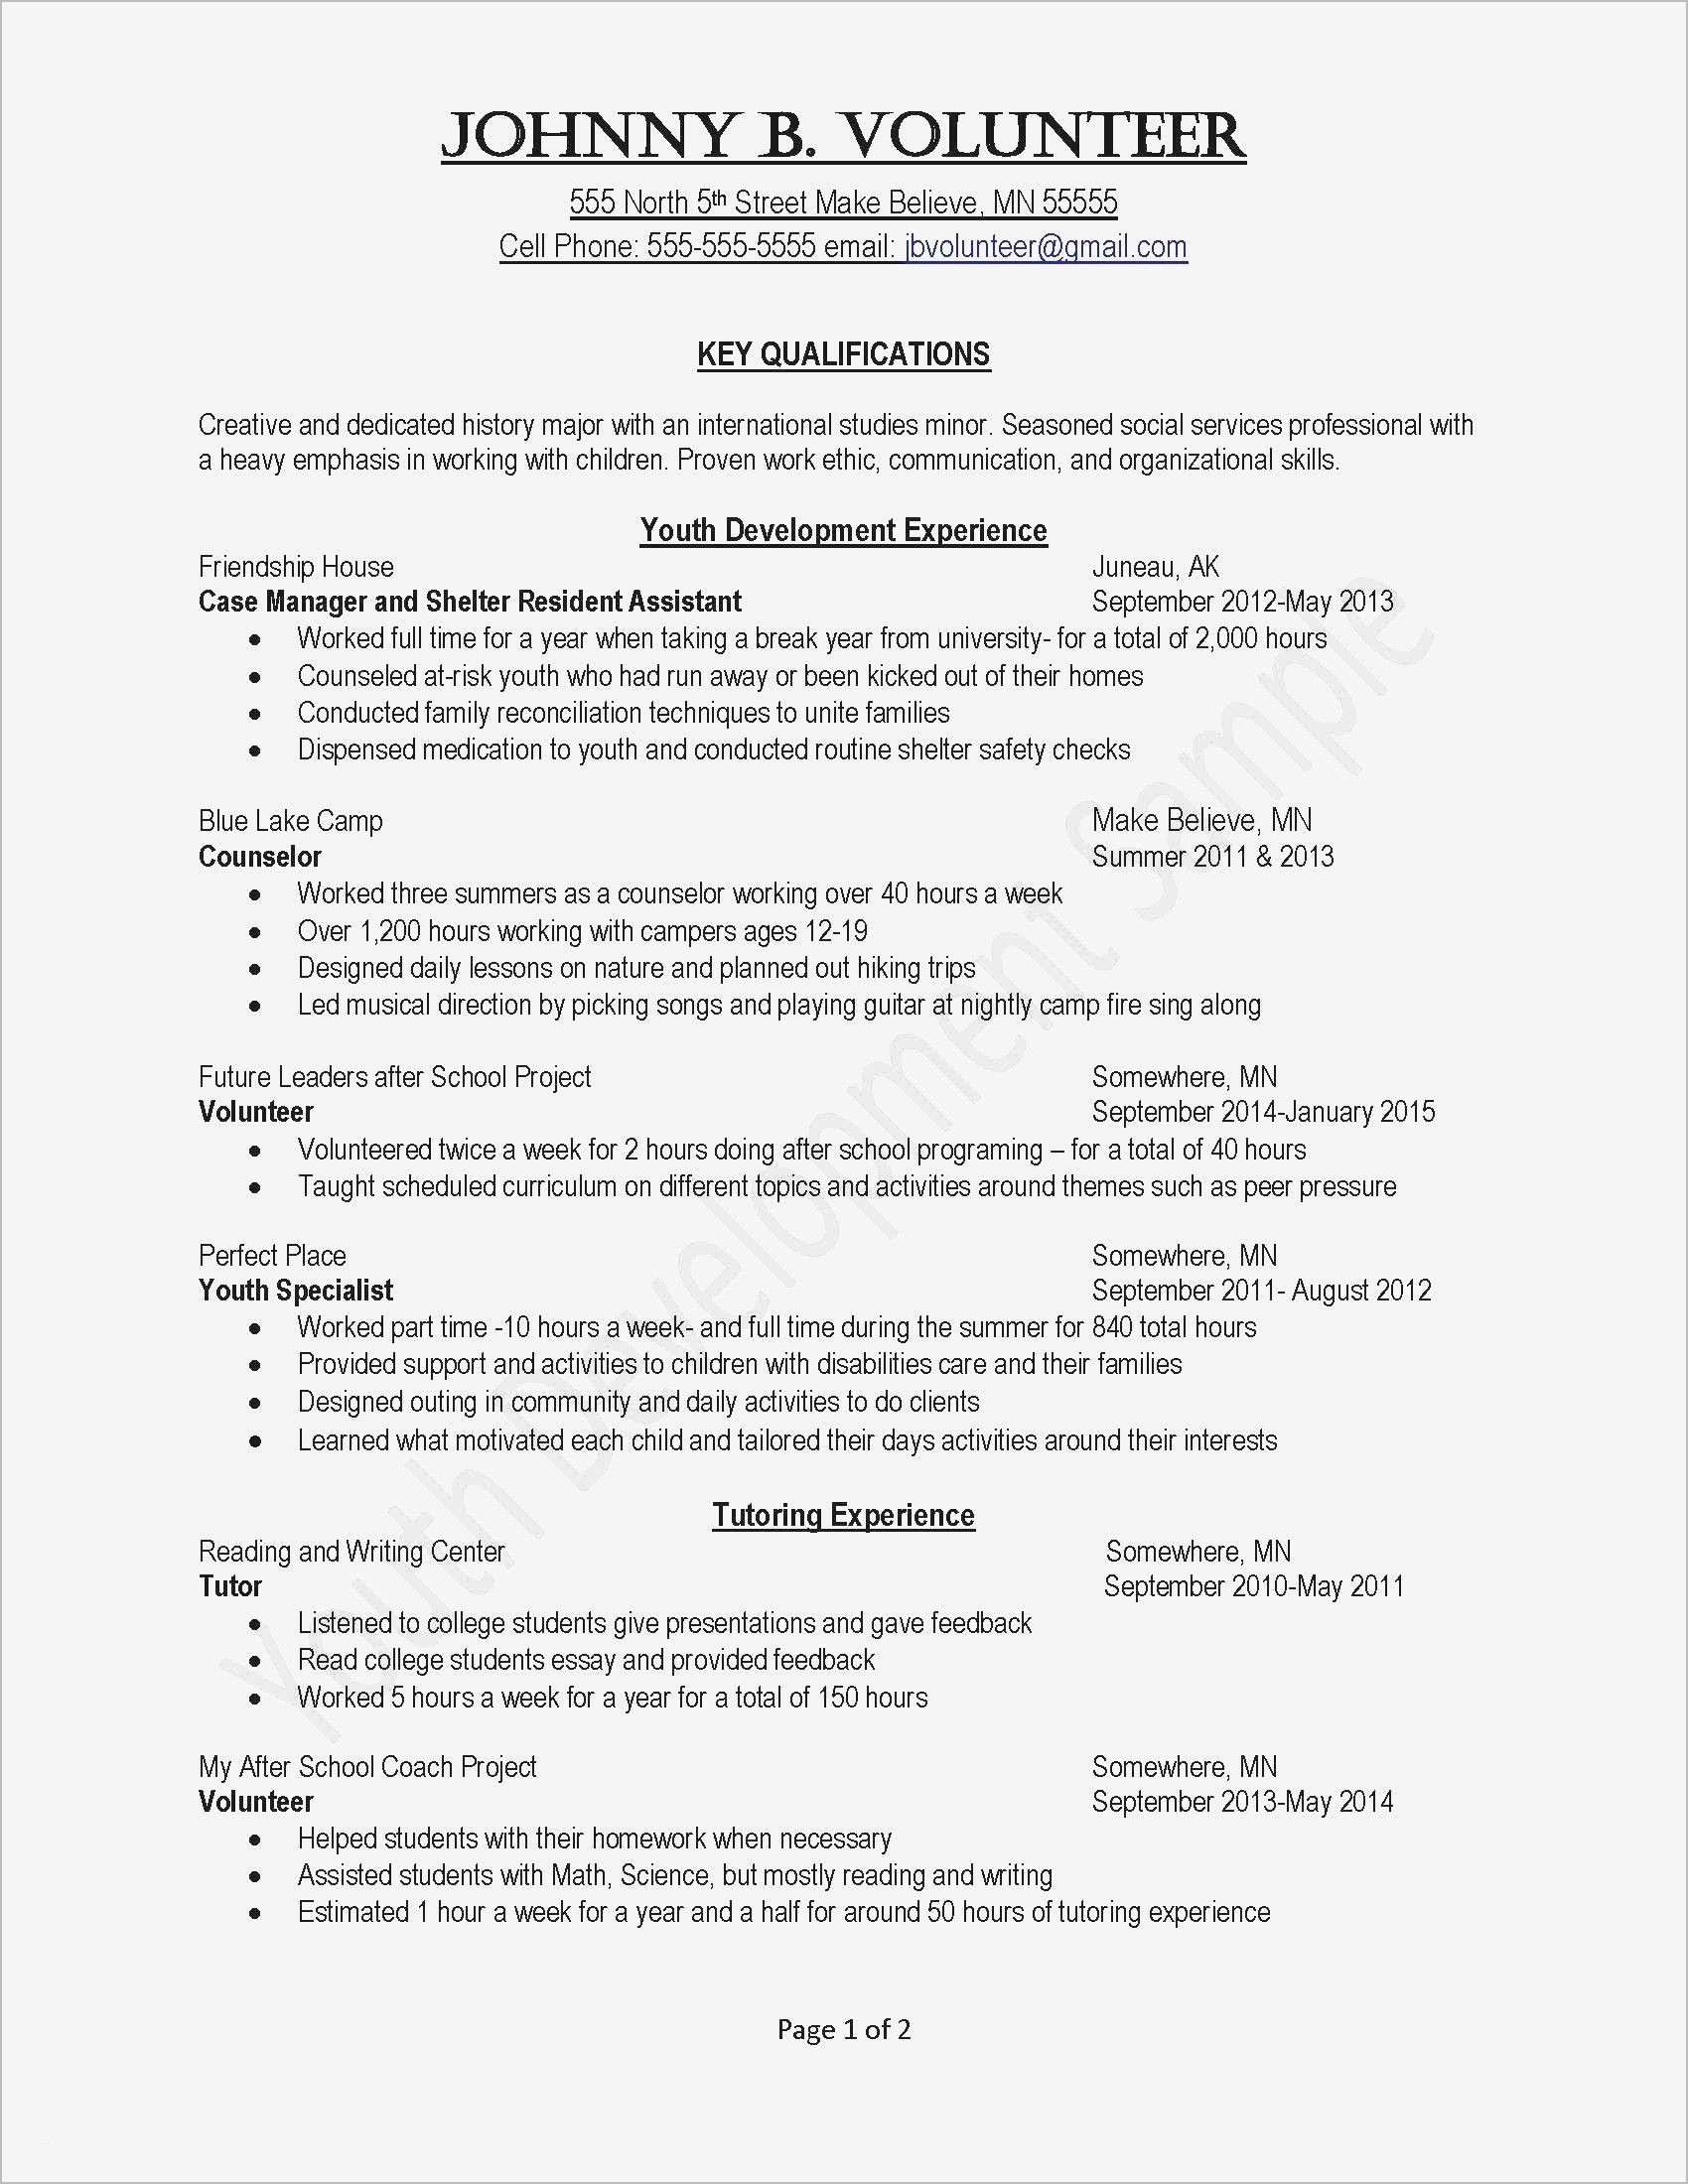 How to Make A Cover Letter Template - Free Templates for Resumes and Cover Letters Best Job Fer Letter